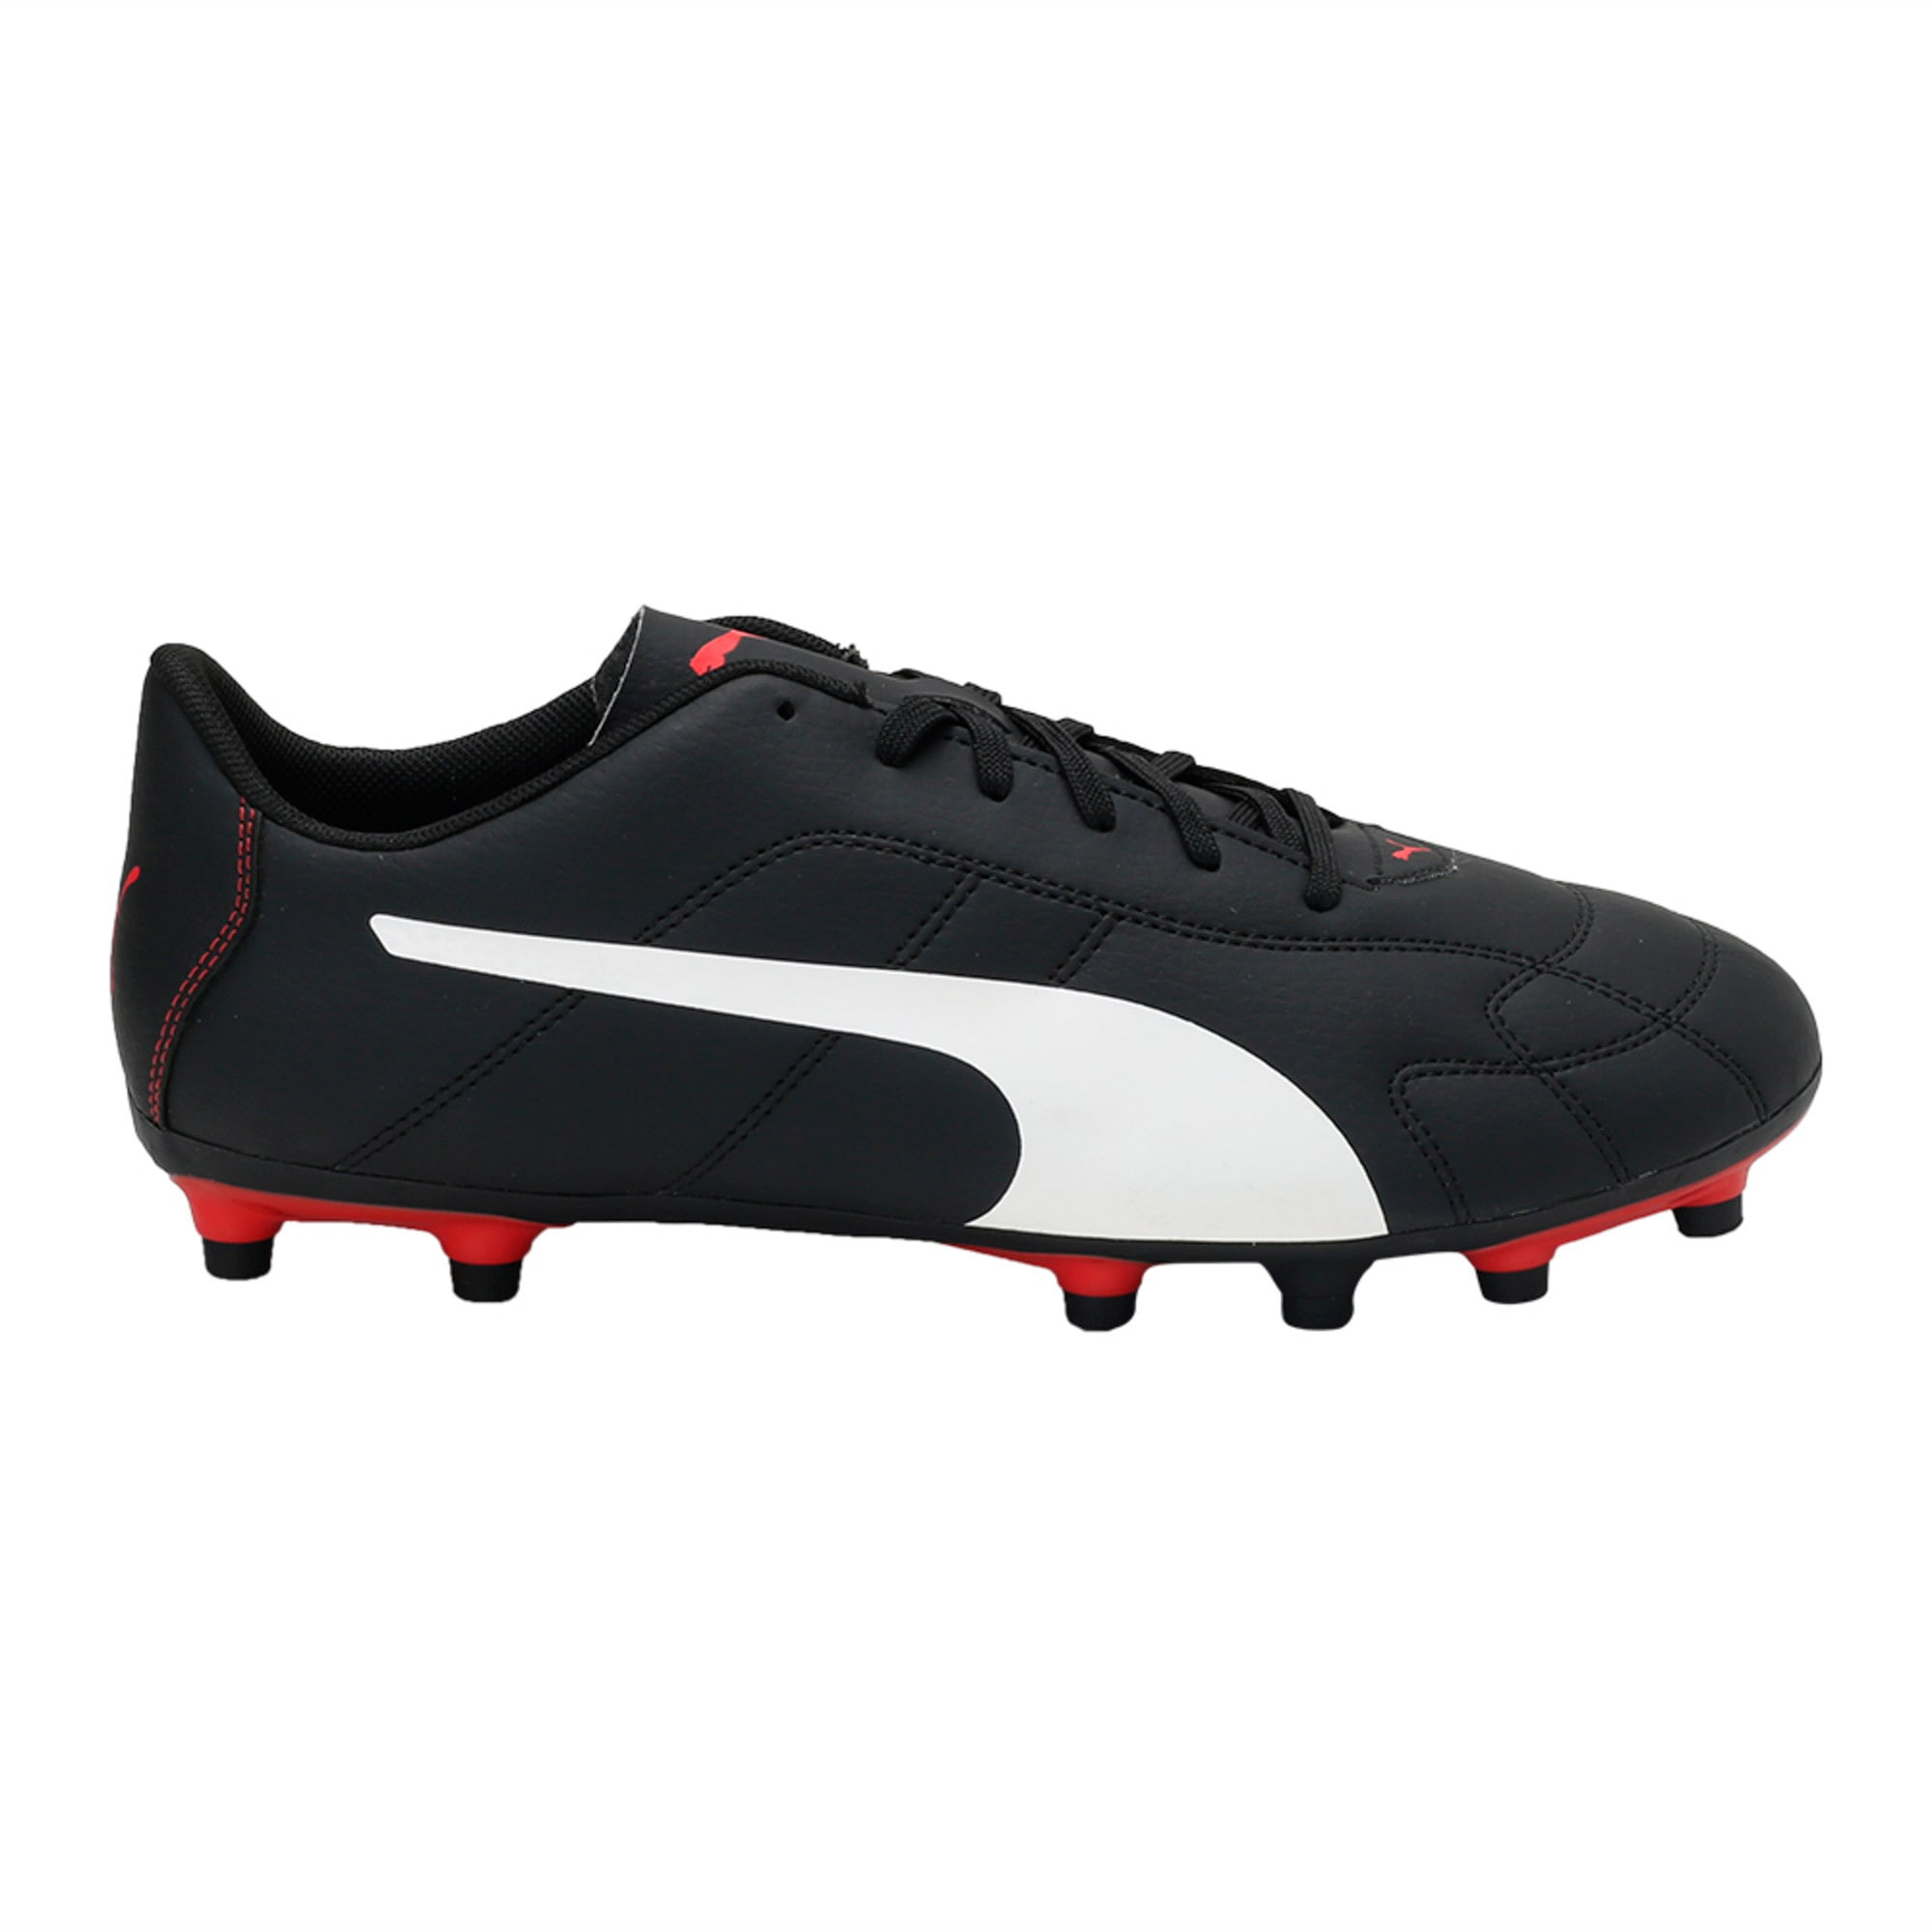 Thumbnail 5 of Classico C Firm Ground Men's Football Boots, Black-White-Red, medium-IND